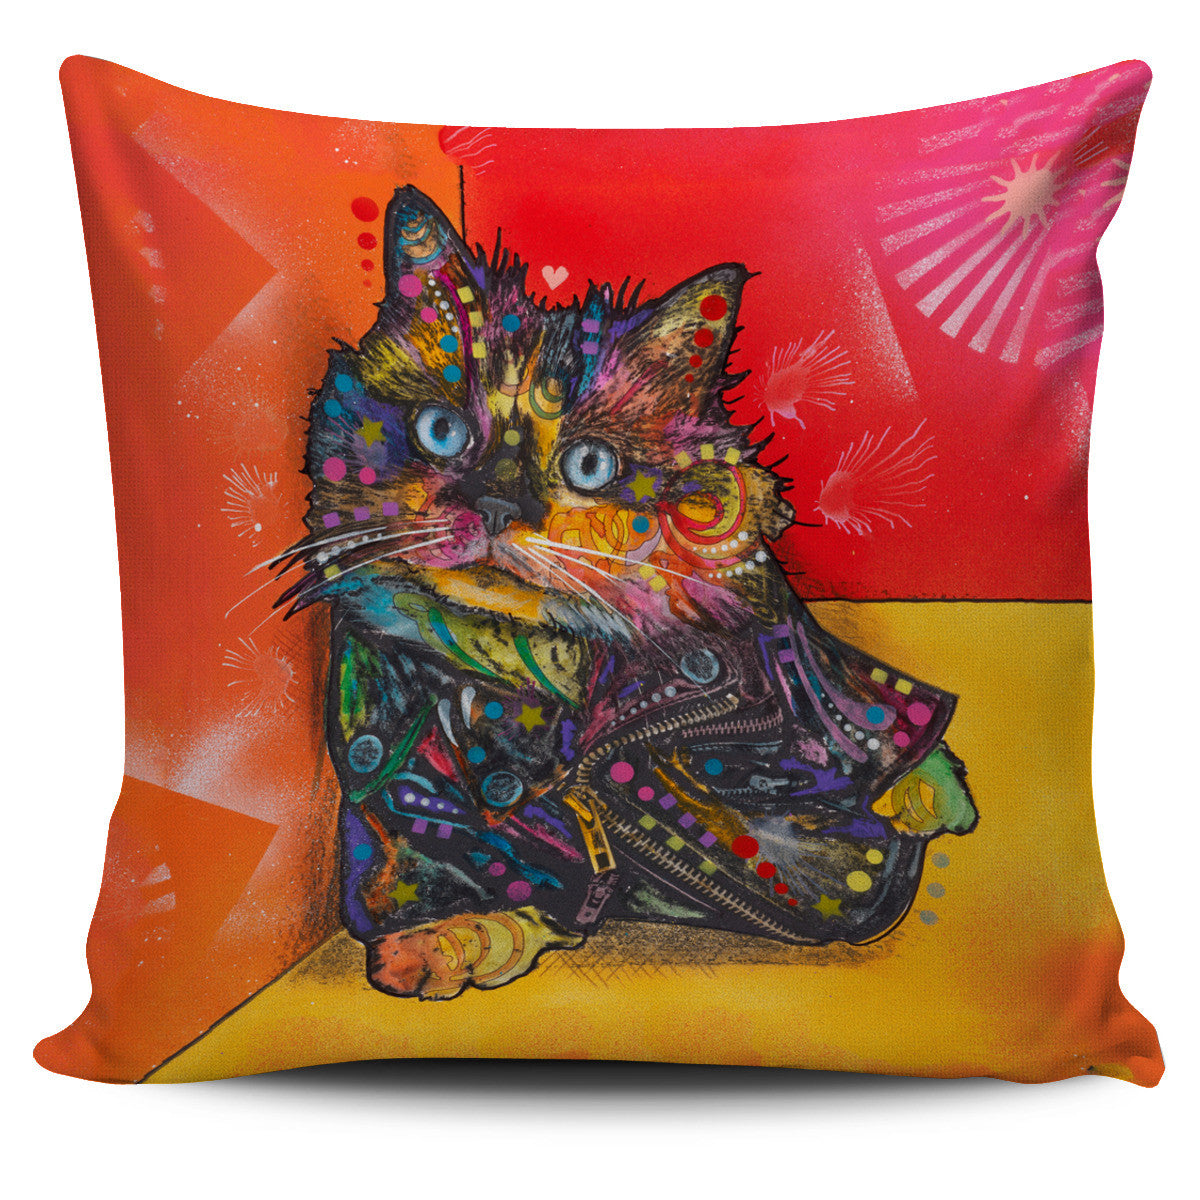 Cat Series II Pillow Covers Offer